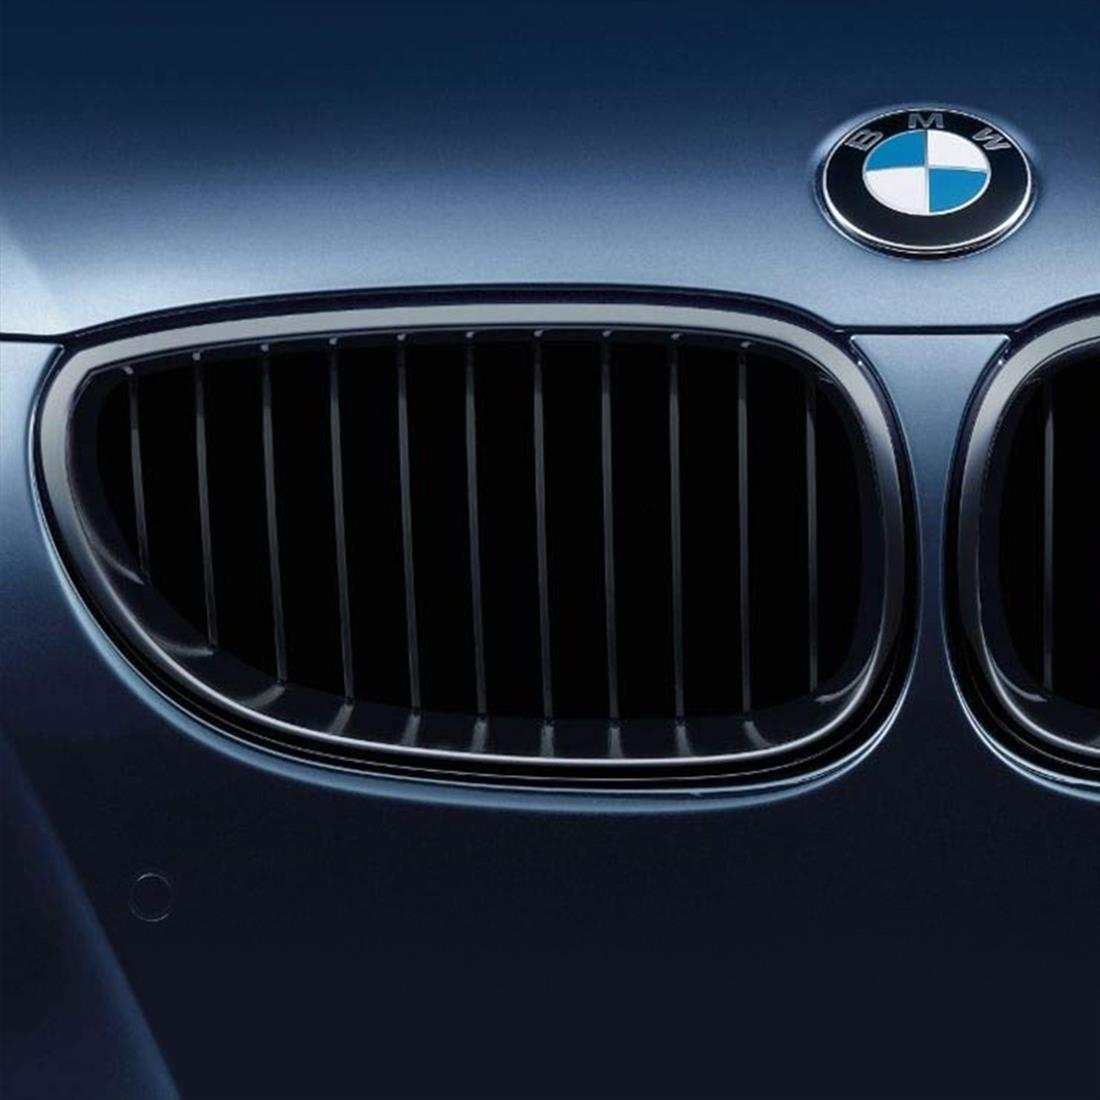 BMW Performance Black Kidney Grille for 5 Series